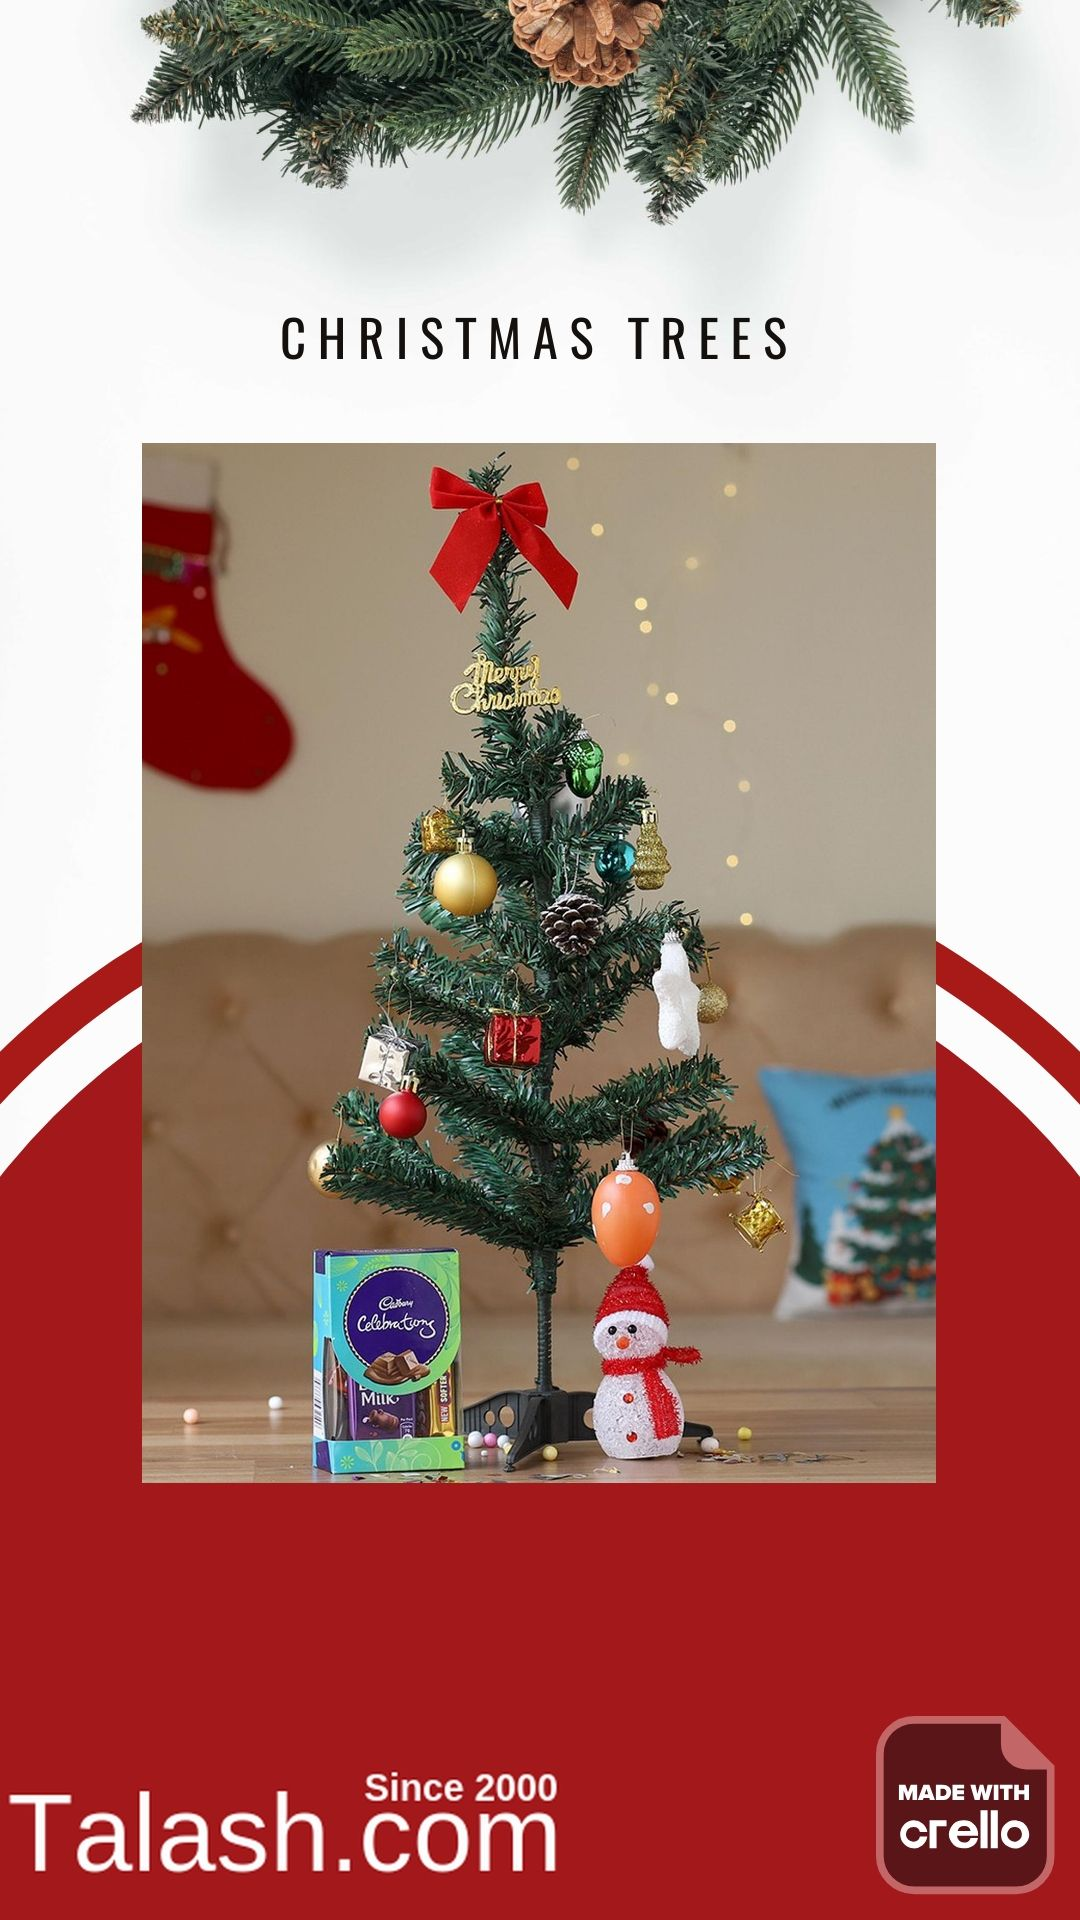 Christmas is the last and most awaited festival of the